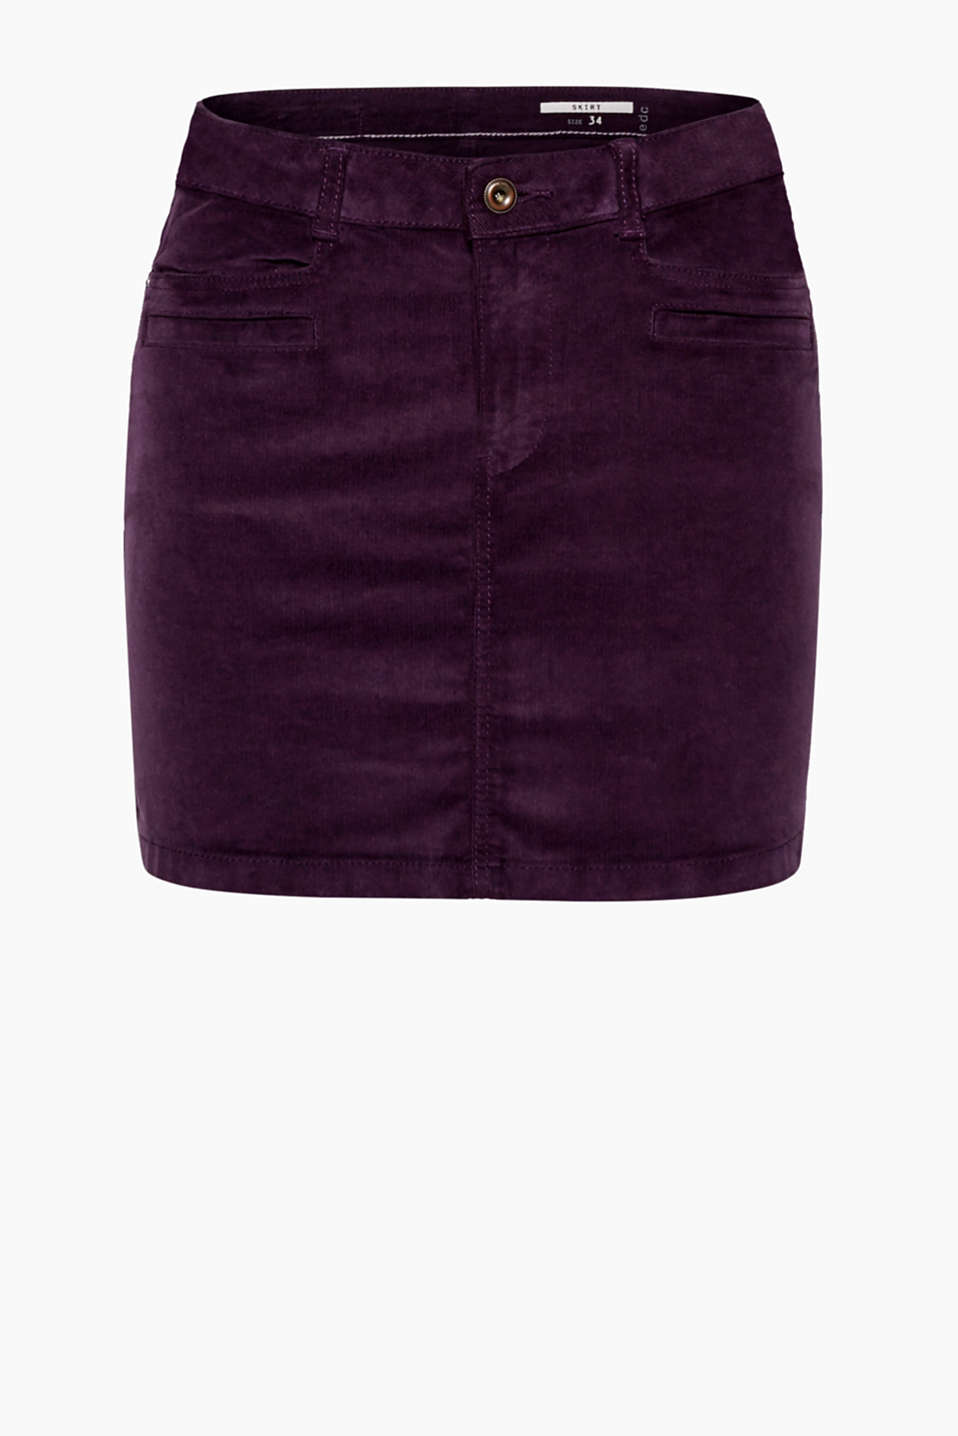 Supersoft and super comfortable: mini skirt in velvety cotton babycord with a high percentage of added stretch